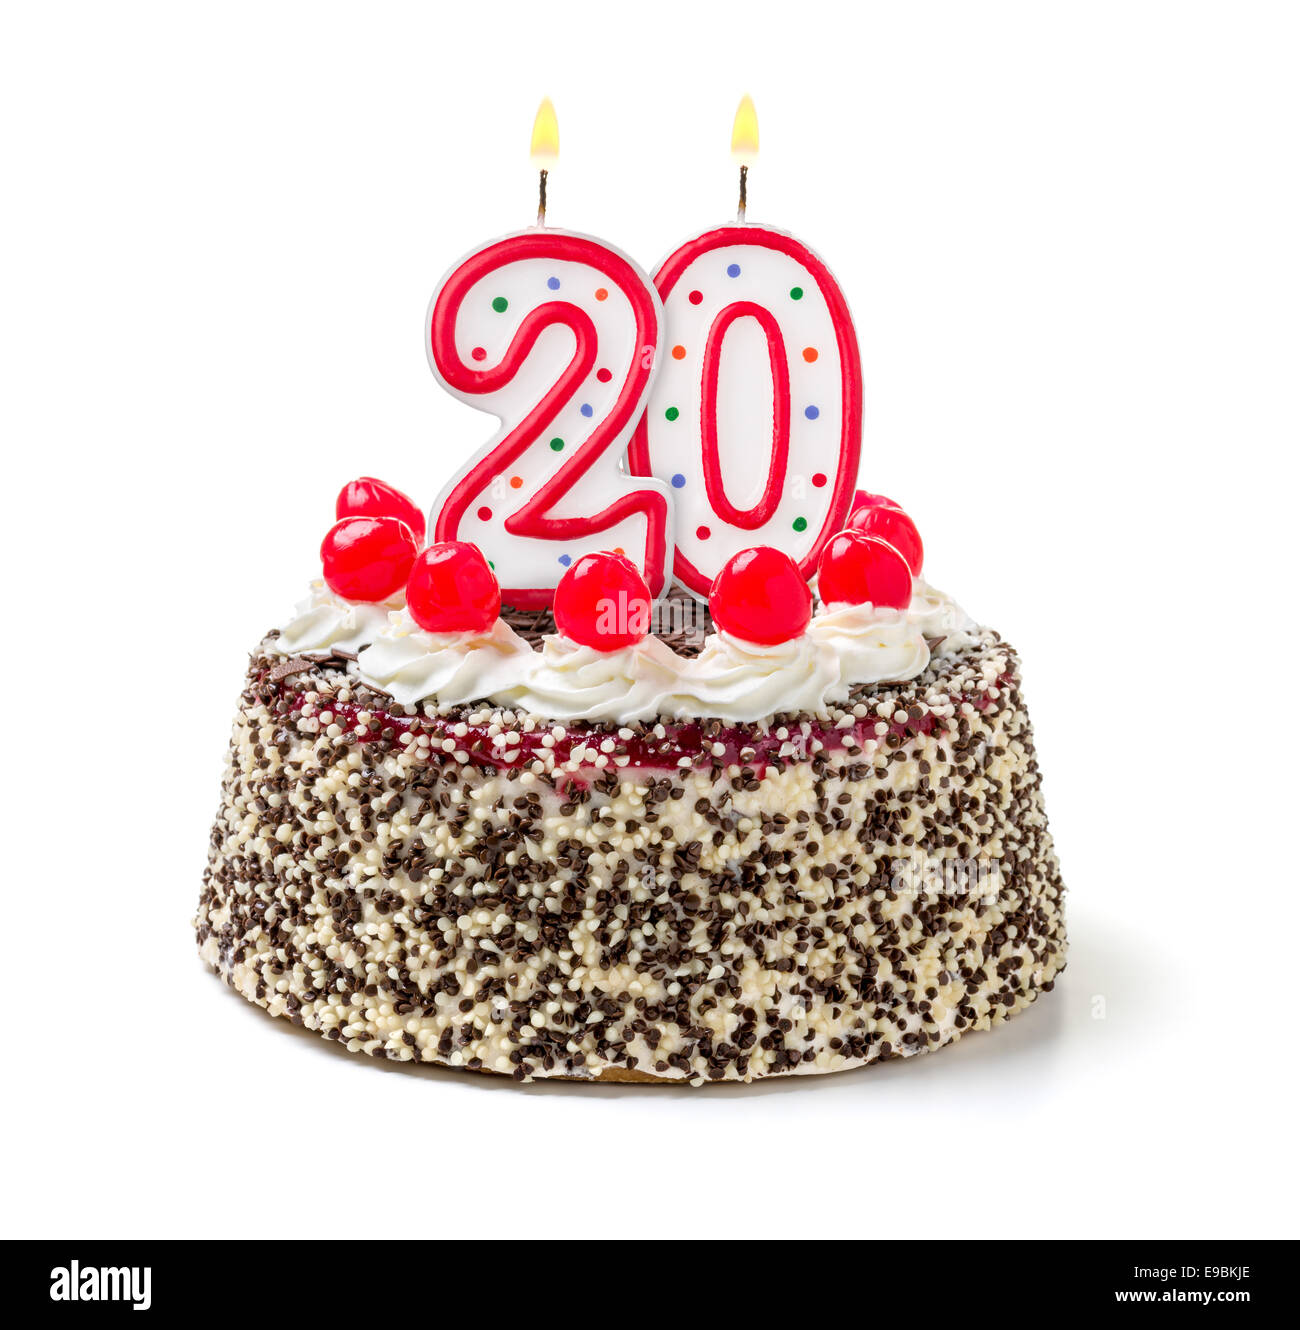 20th Birthday Cake Stock Photos Amp 20th Birthday Cake Stock